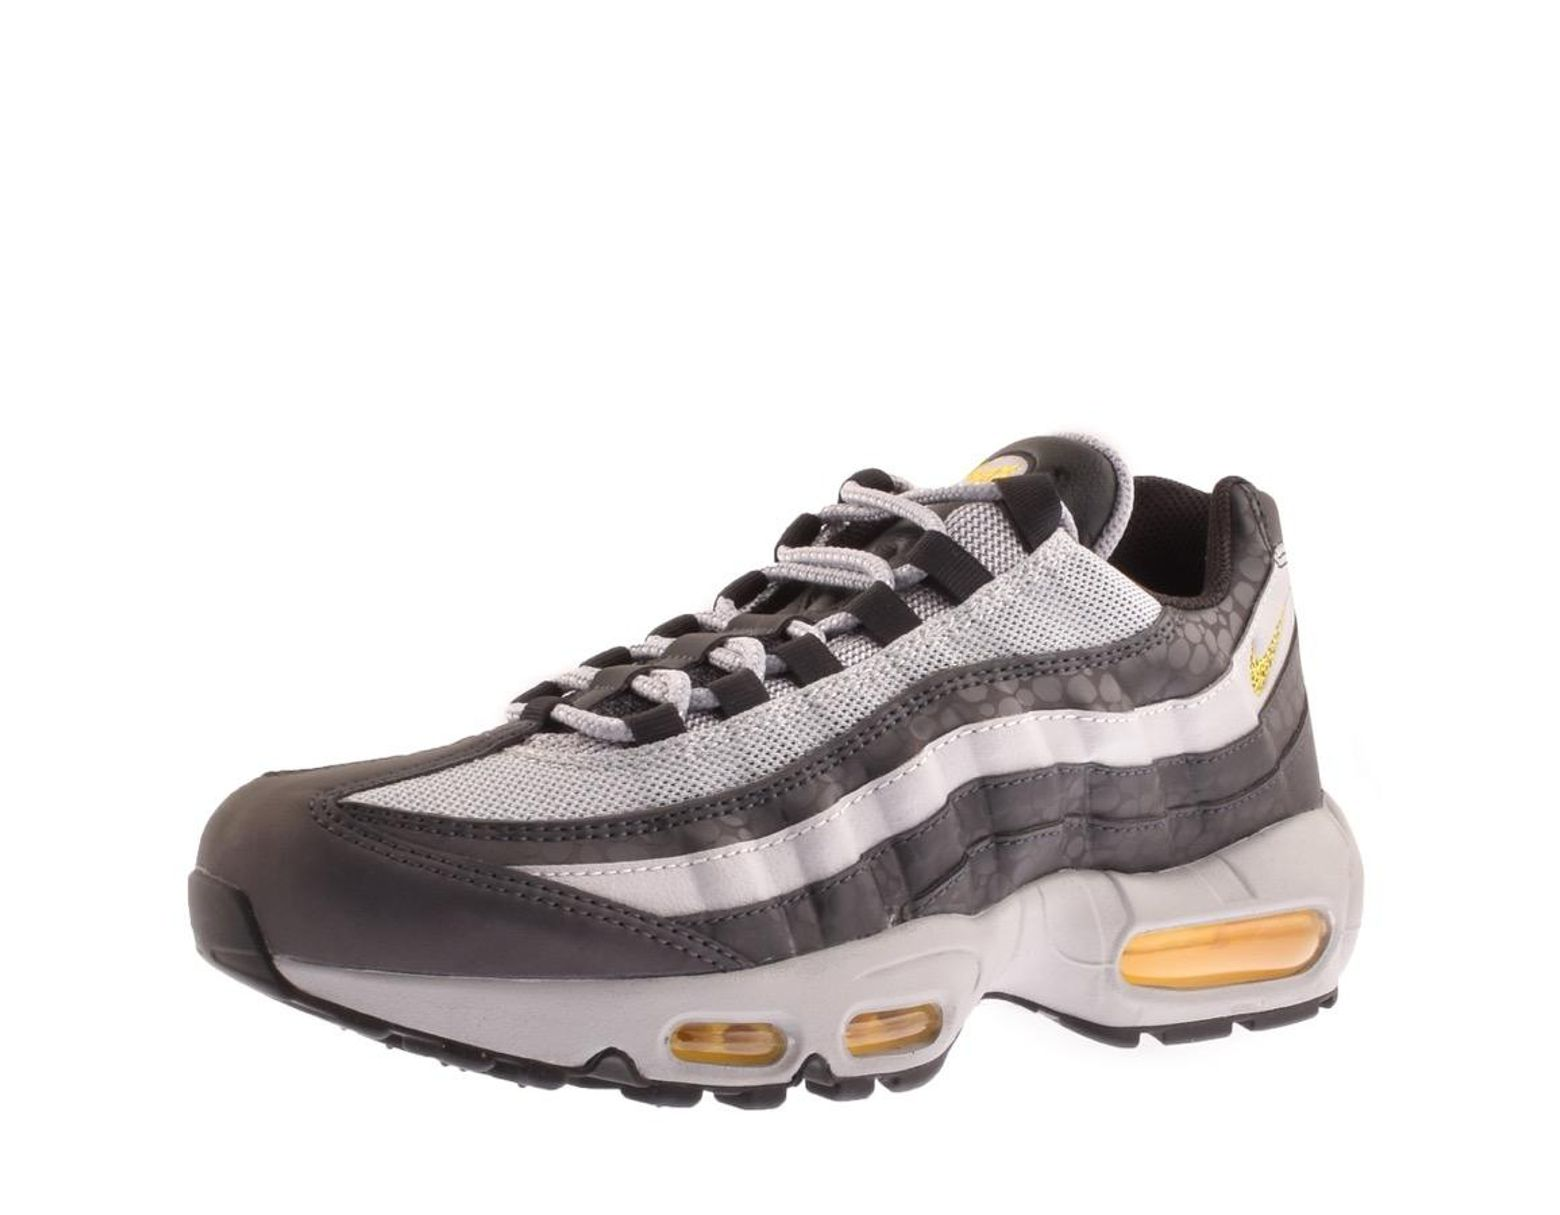 ff784f3c30 Nike Air Max 95 Se Reflective Trainers Grey in Gray for Men - Lyst